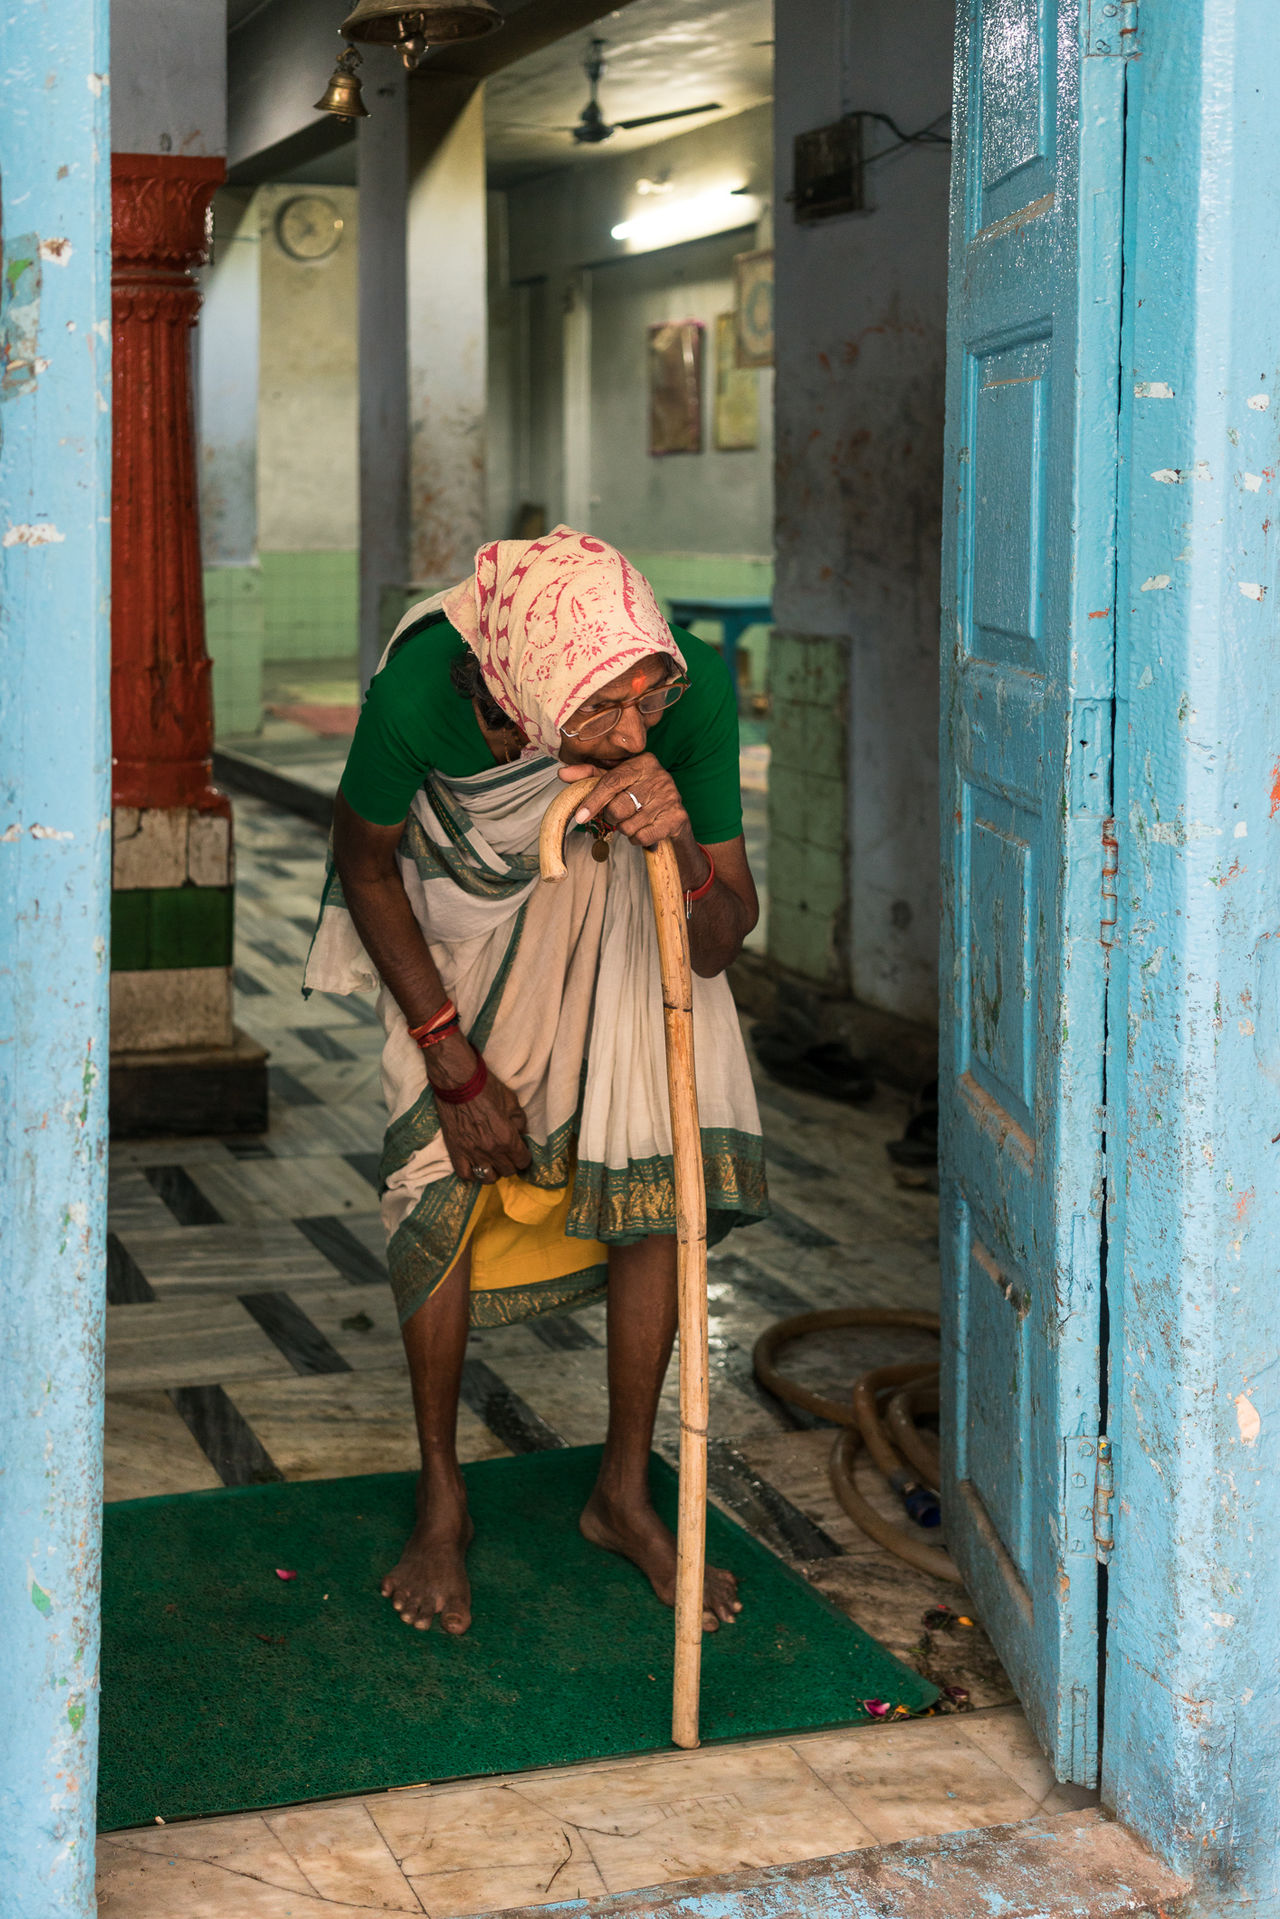 Resting in Temple Doorway, Varanasi Color Color Palette Color Photography Colorful Colours India India_clicks Indian Culture  Indianstories Indiapictures One Person Real Life Real People Real People Photography Senior Adult Senior Women Street Photography Streetphotography Travel Travel Destinations Travel Photography Travelphotography Varanasi Varanasi India Women